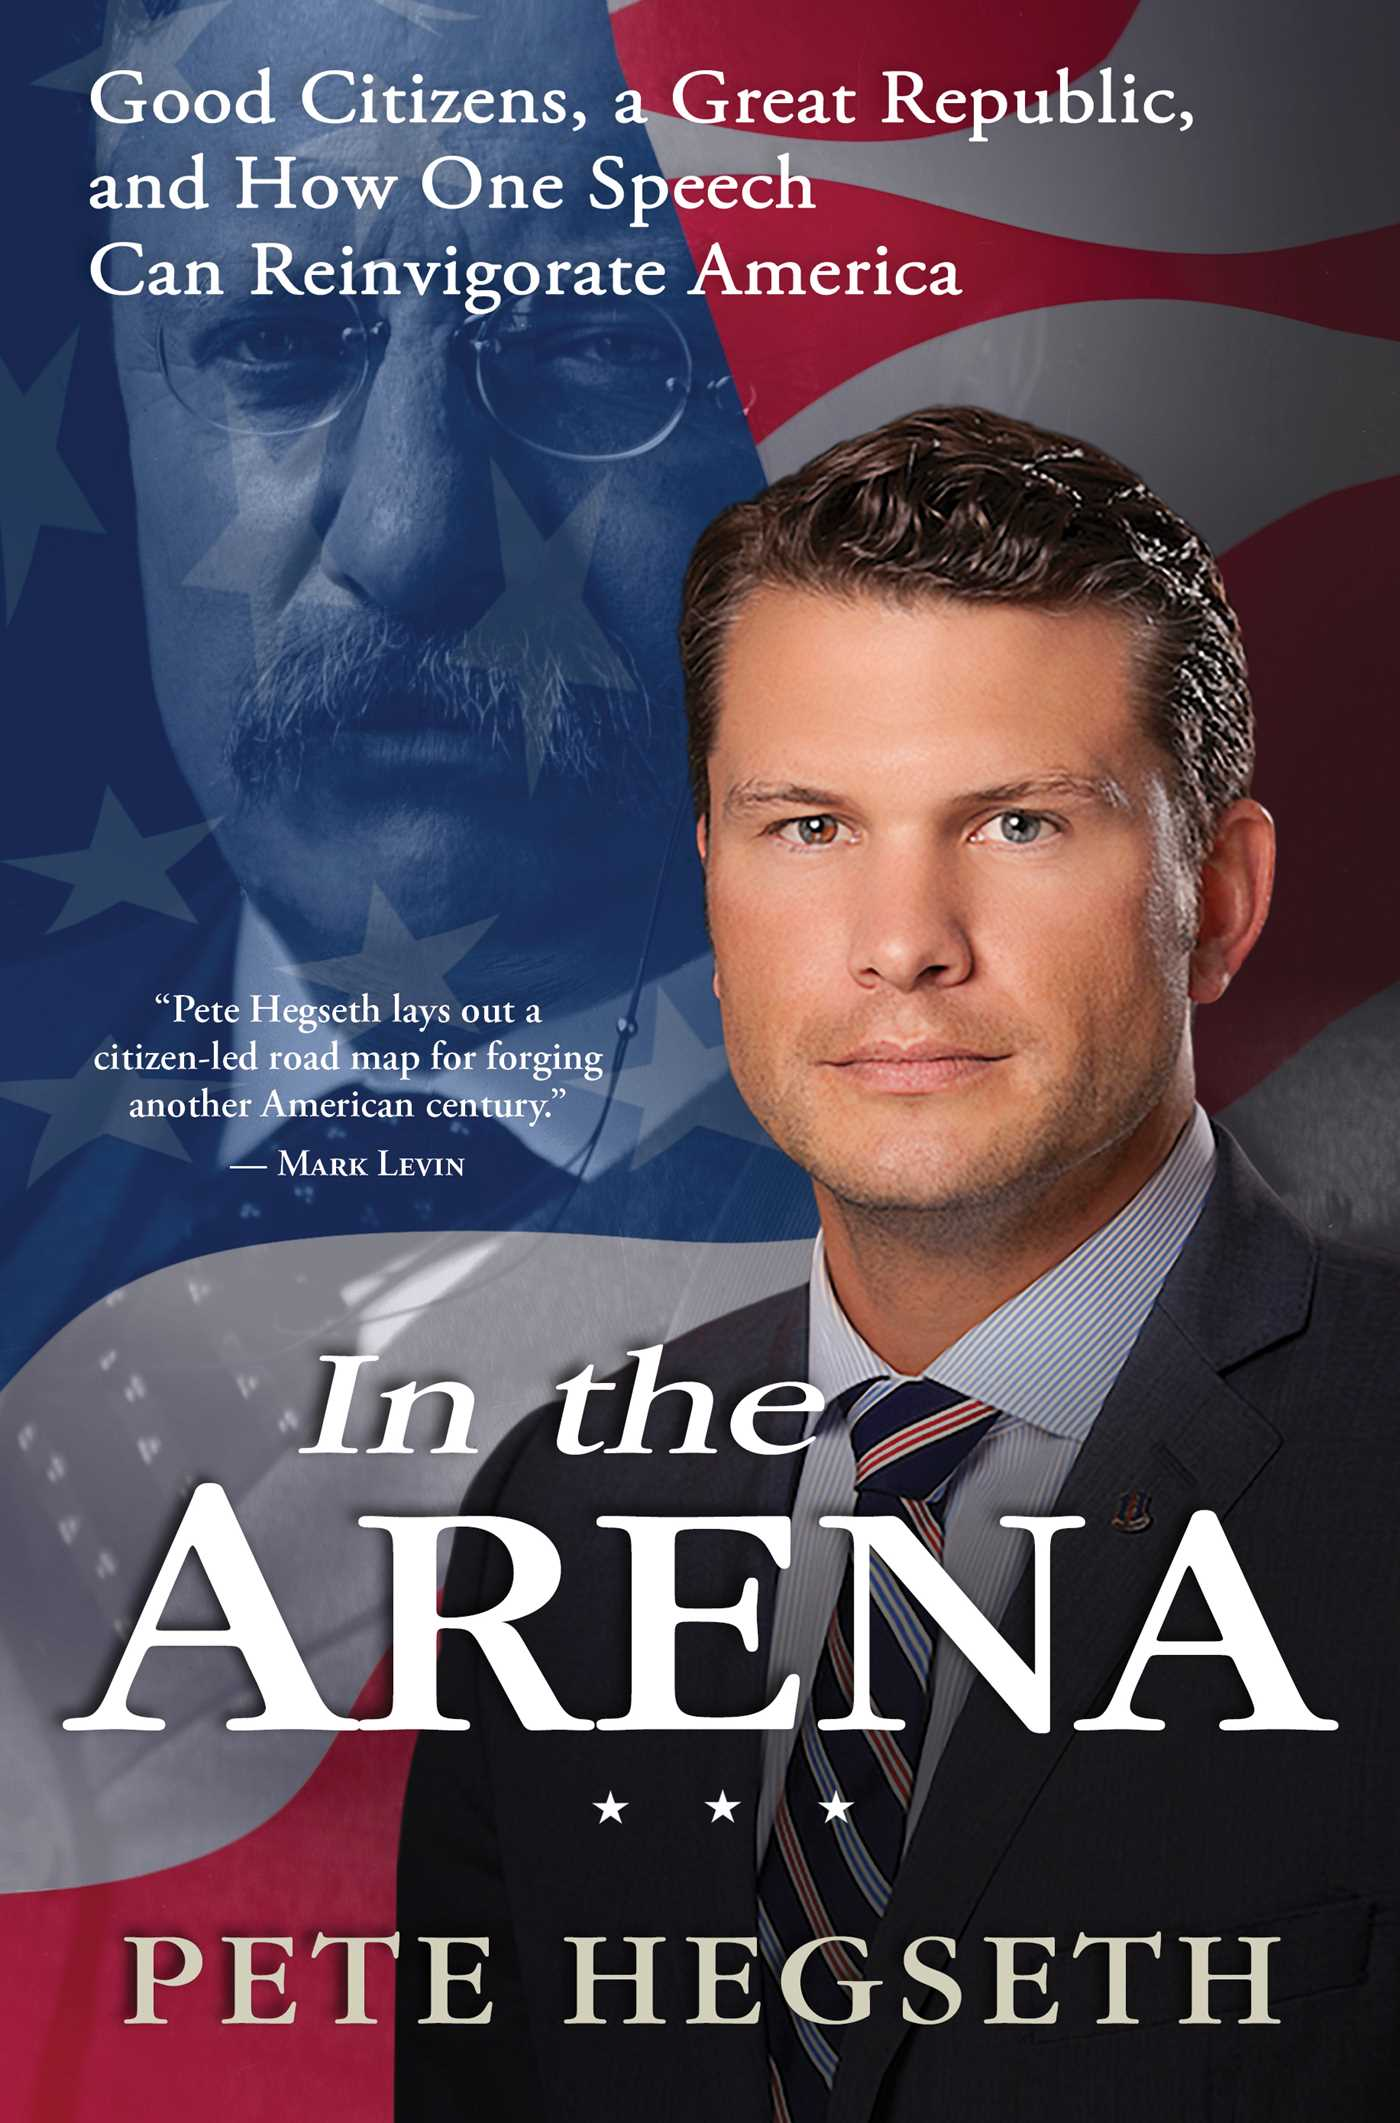 Hegseth – In the Arena: Good Citizens, a Great Republic, and How One Speech Can Reinvigorate America